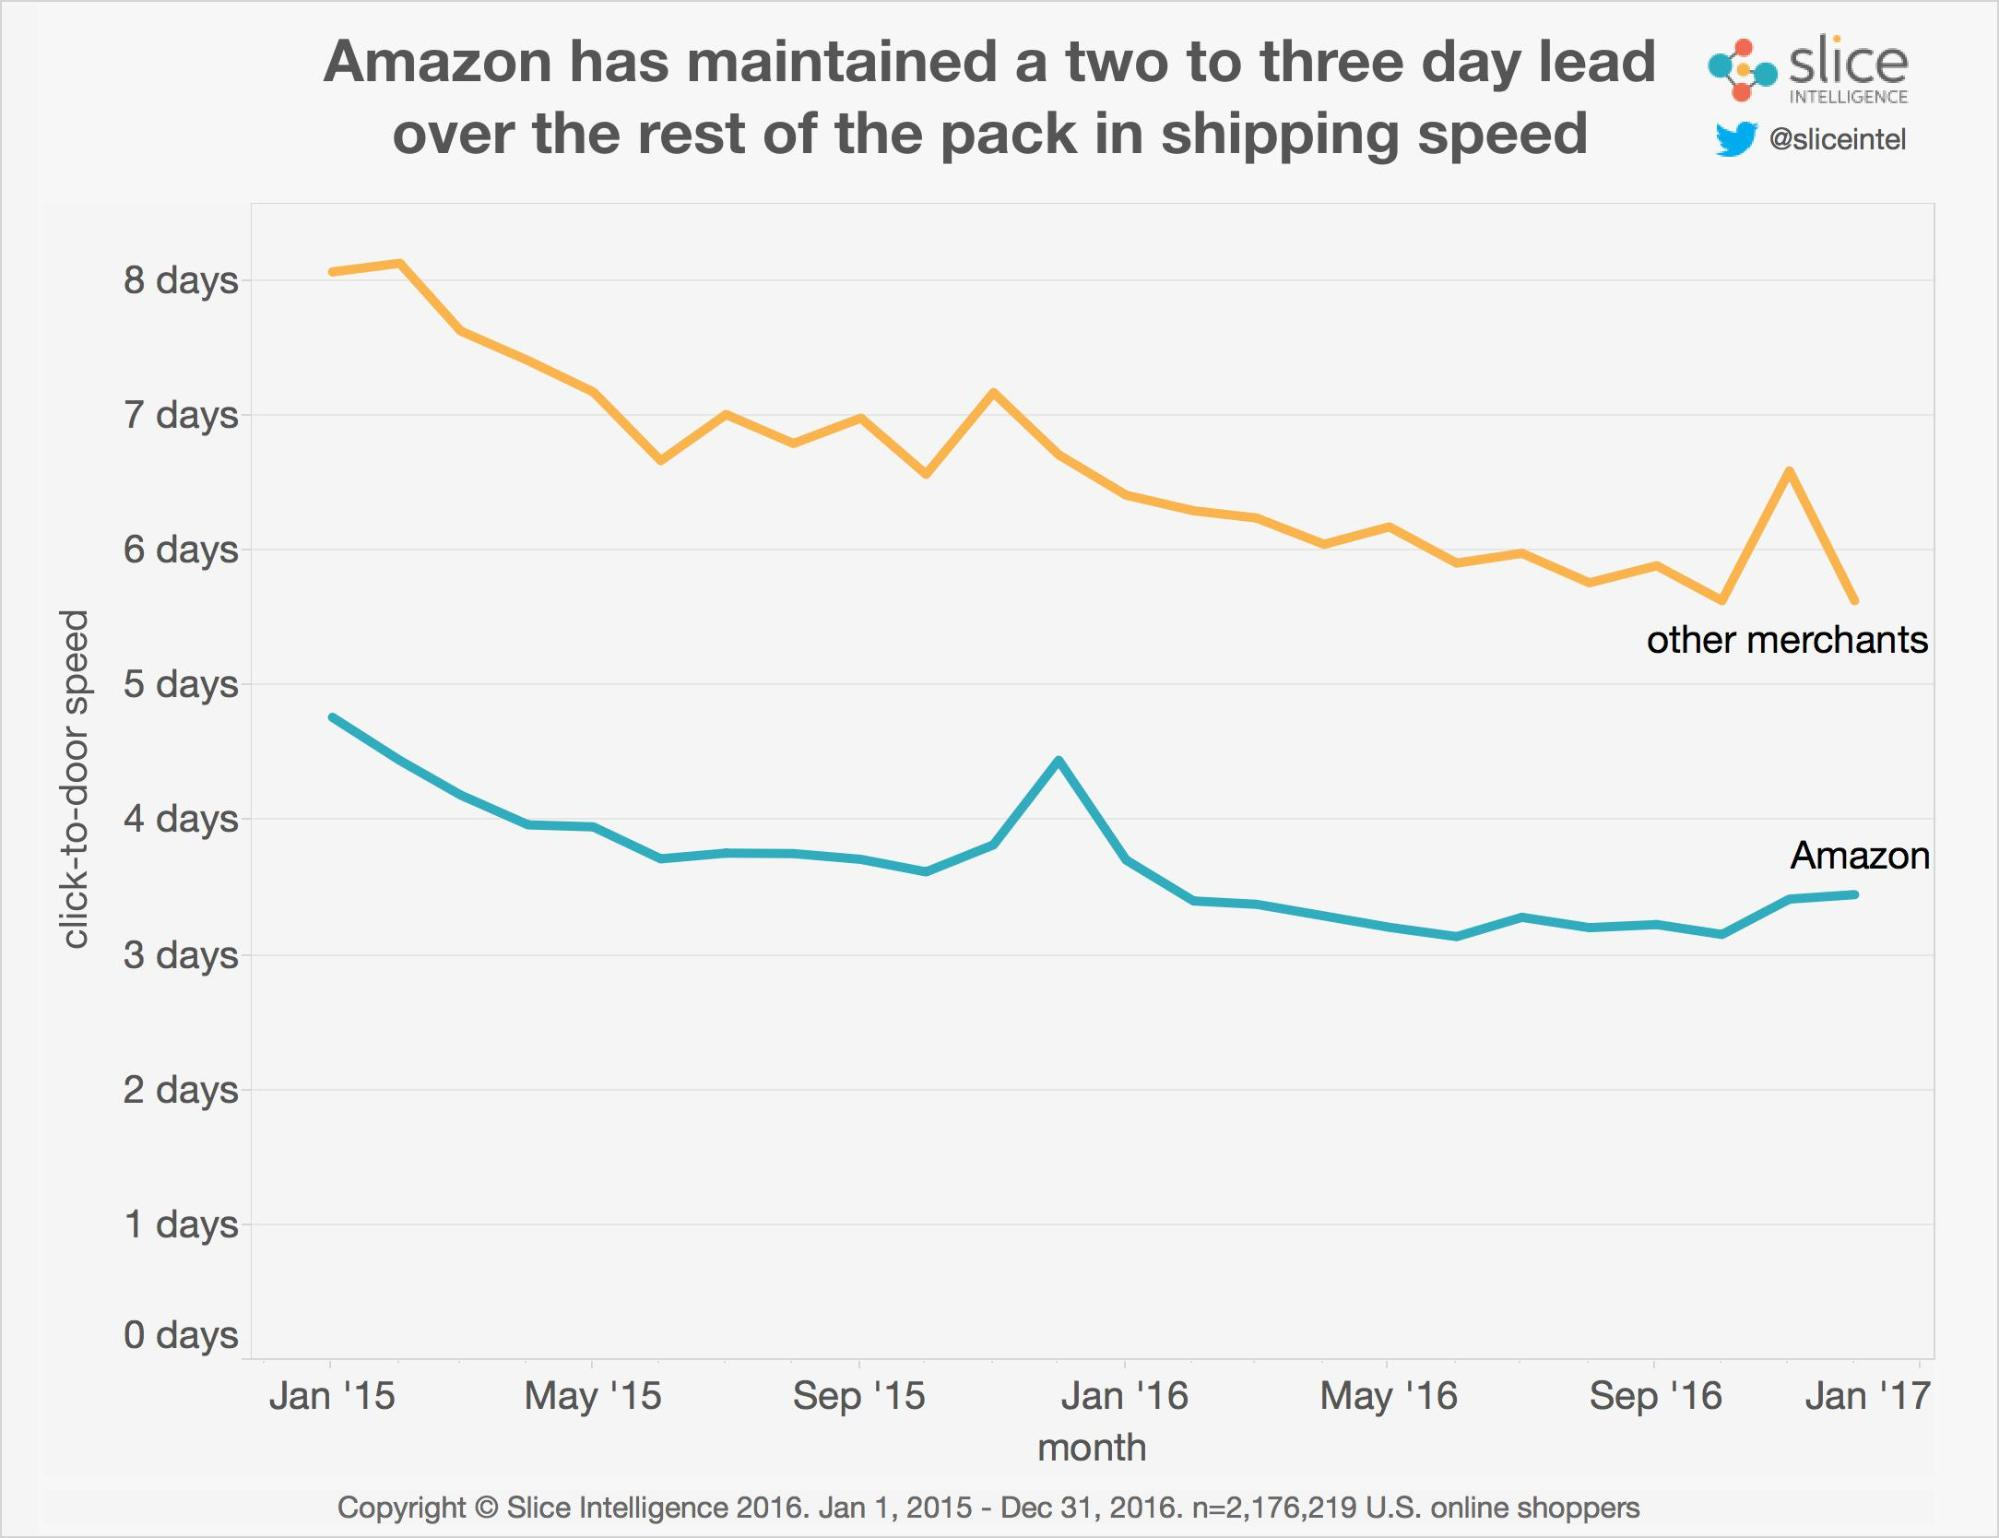 amazon shipping speed leads competitors